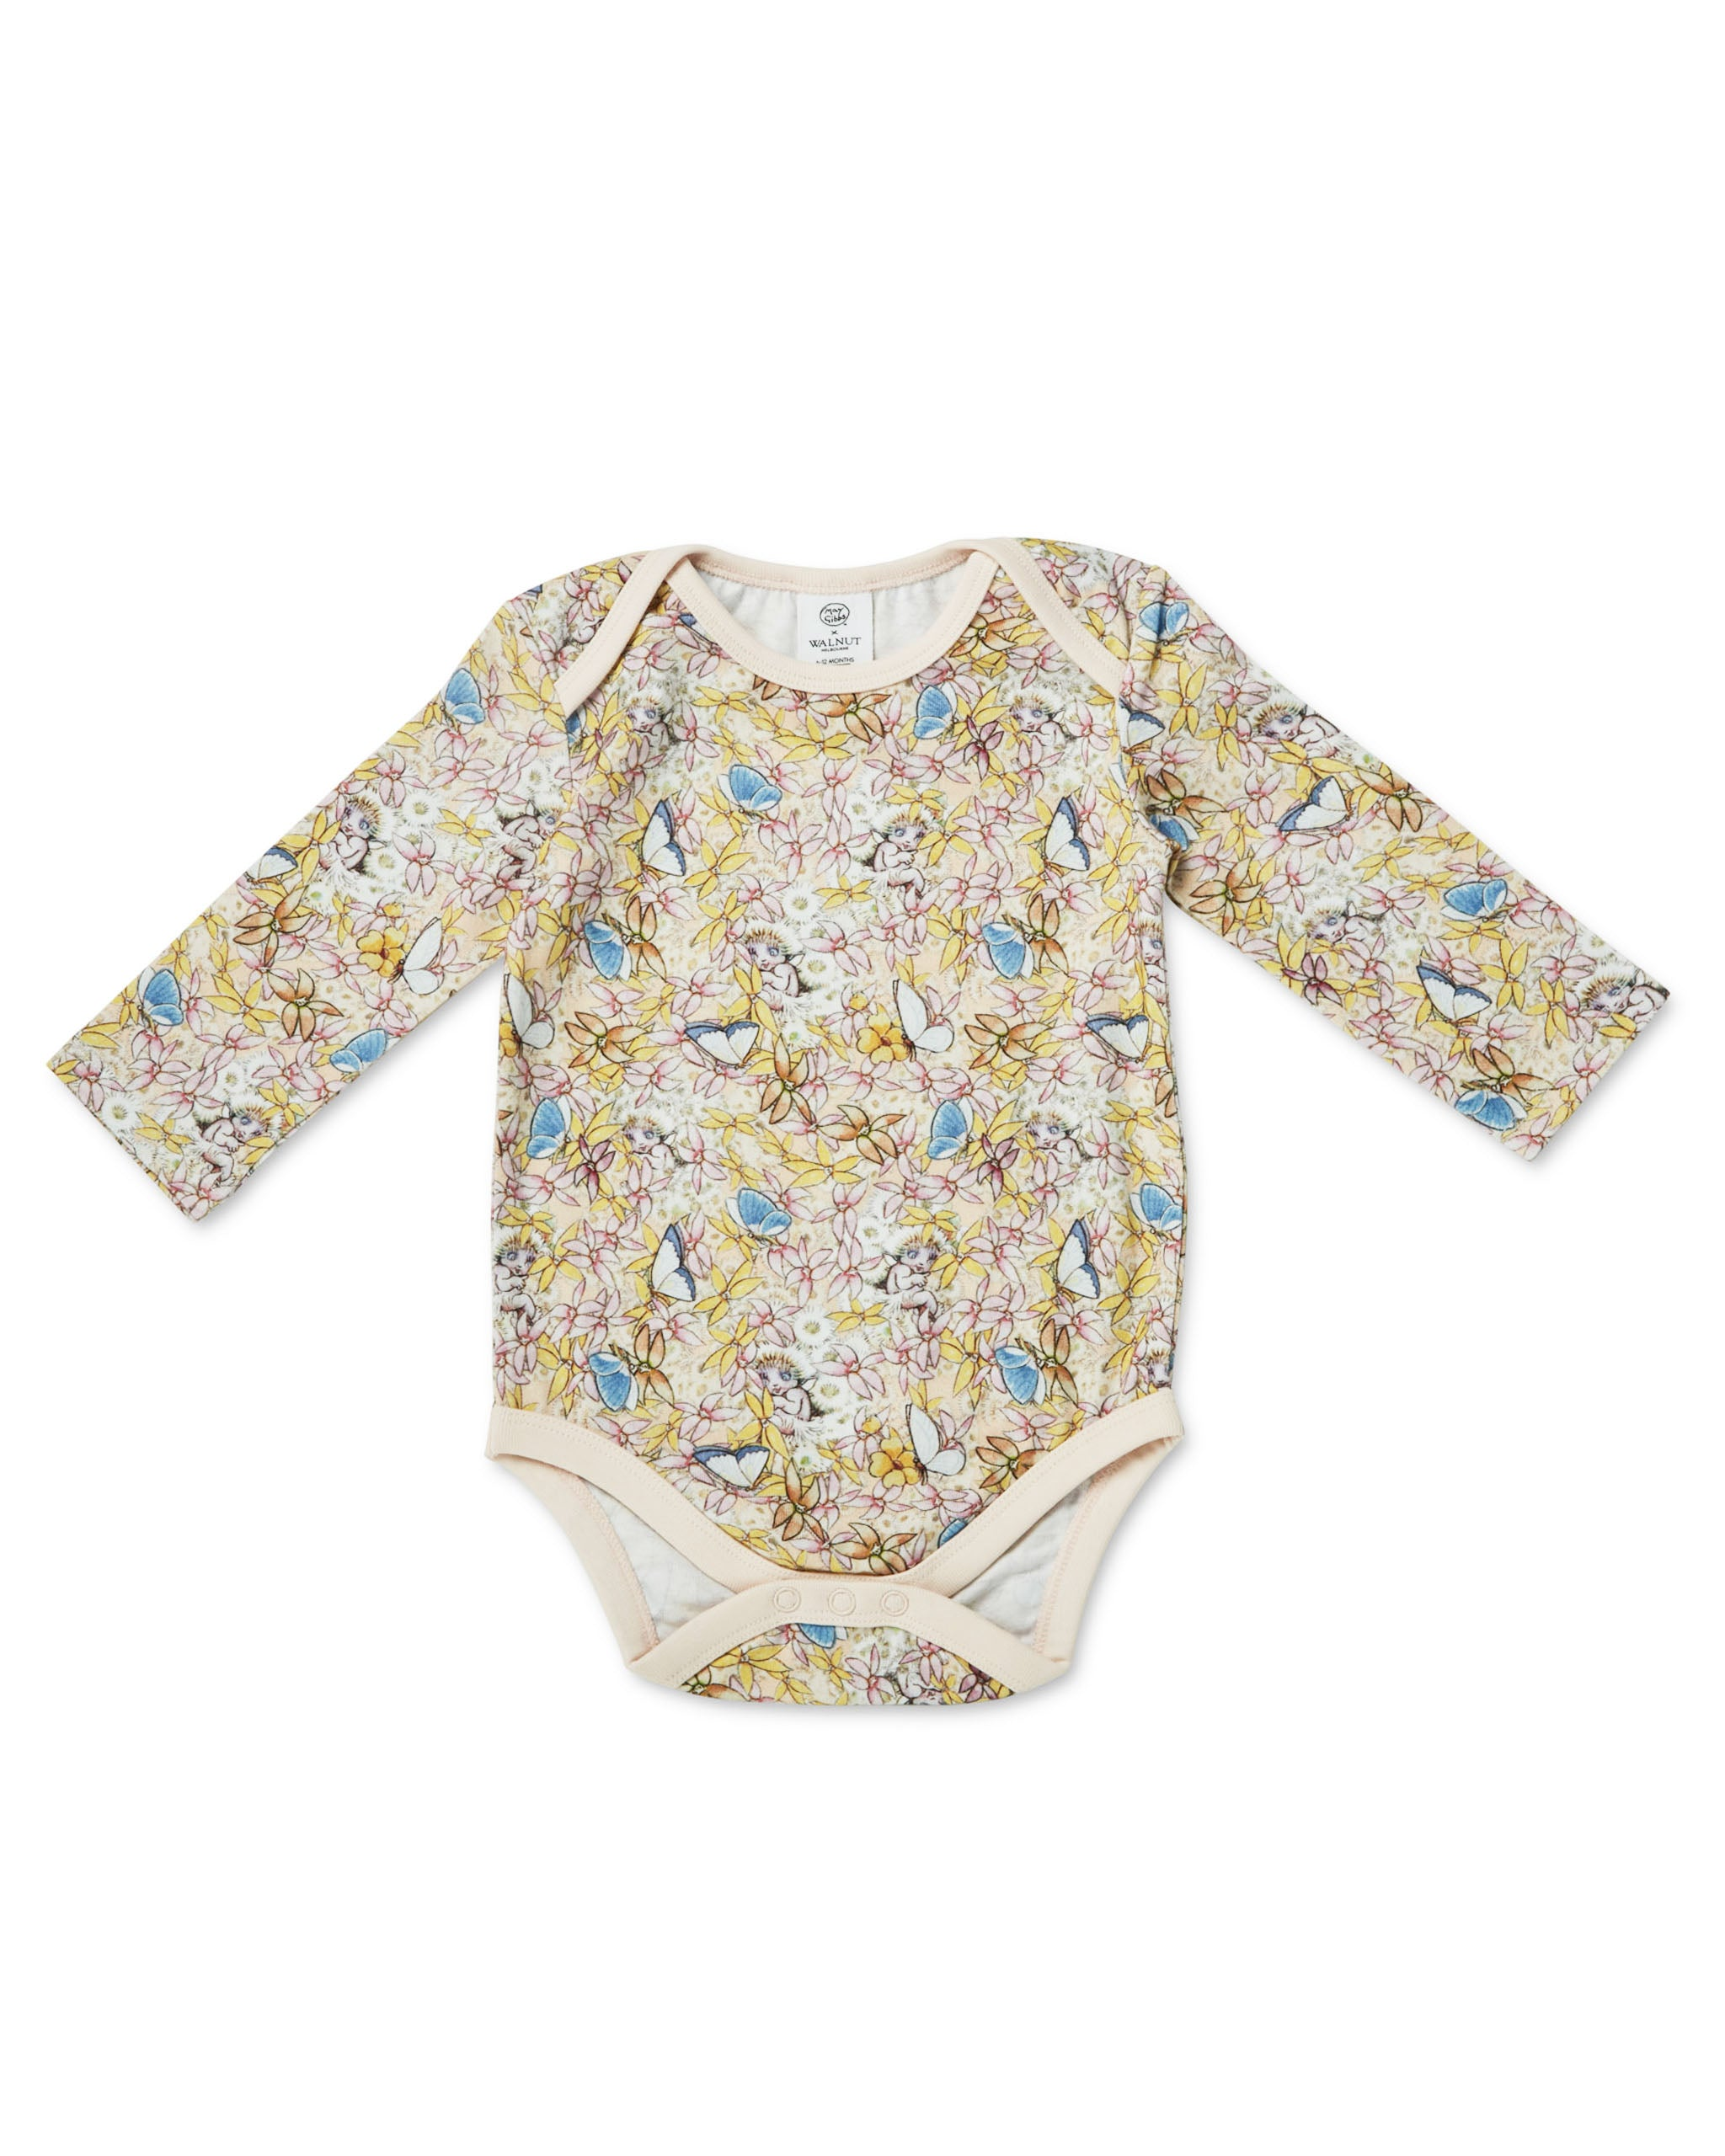 May Gibbs Winter Onesie - Gum Blossom